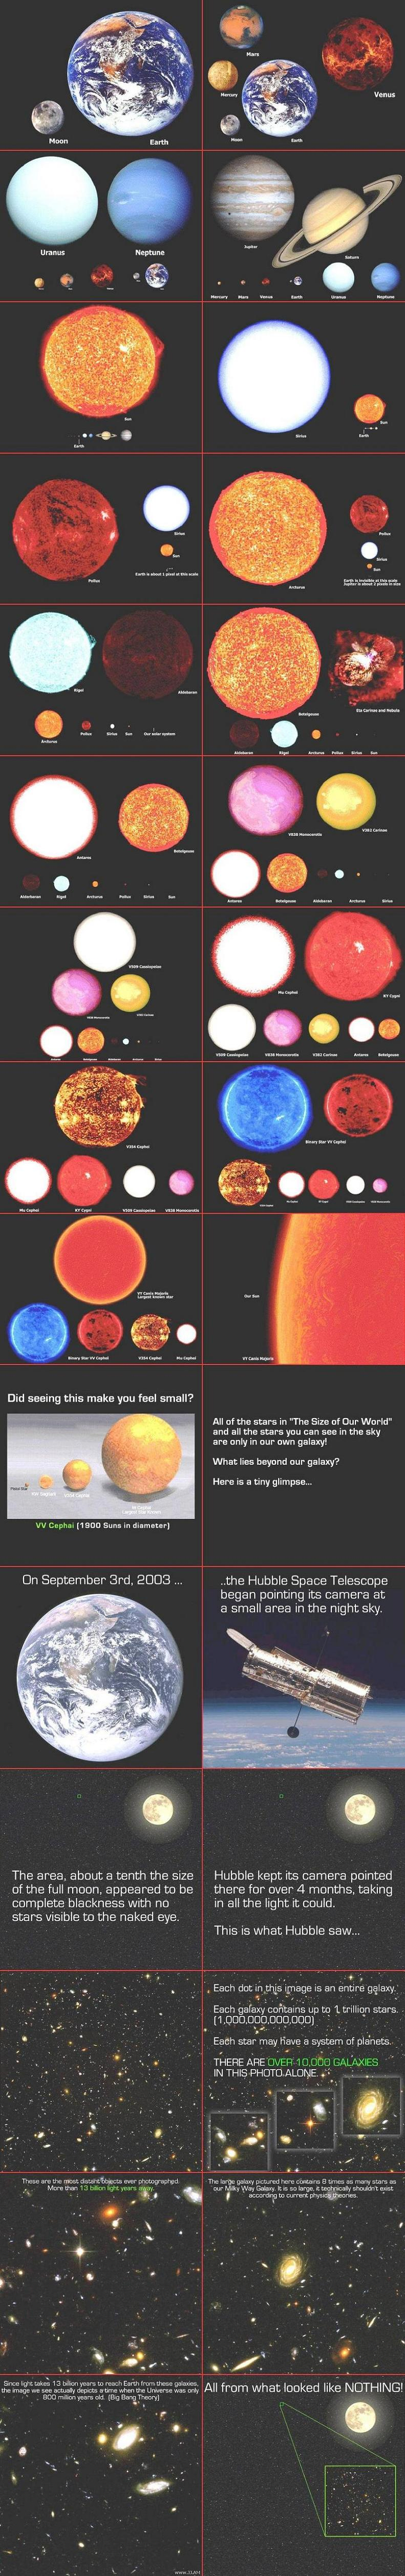 size of the earth compared to the rest of the universe space planets stars How to Grasp Size, Scale and Temperature with Three Giant Infographics